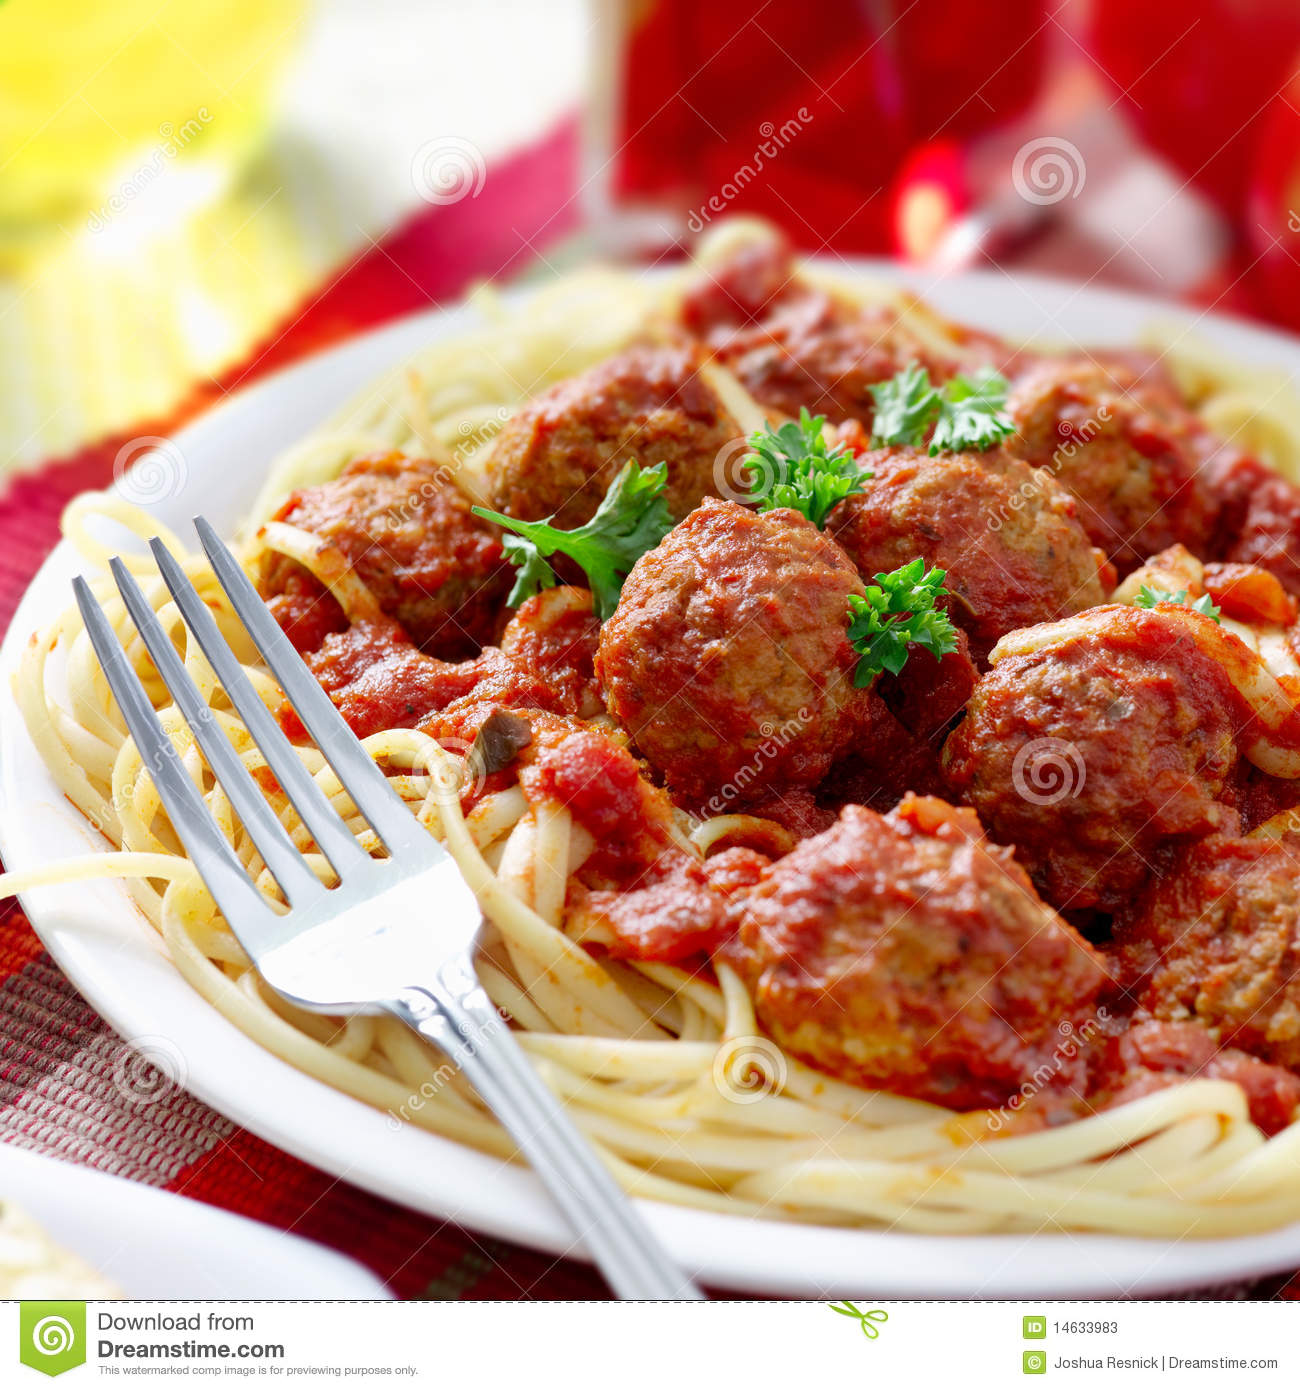 Spaghetti Dinner Clip Art Spaghetti and meatball dinner